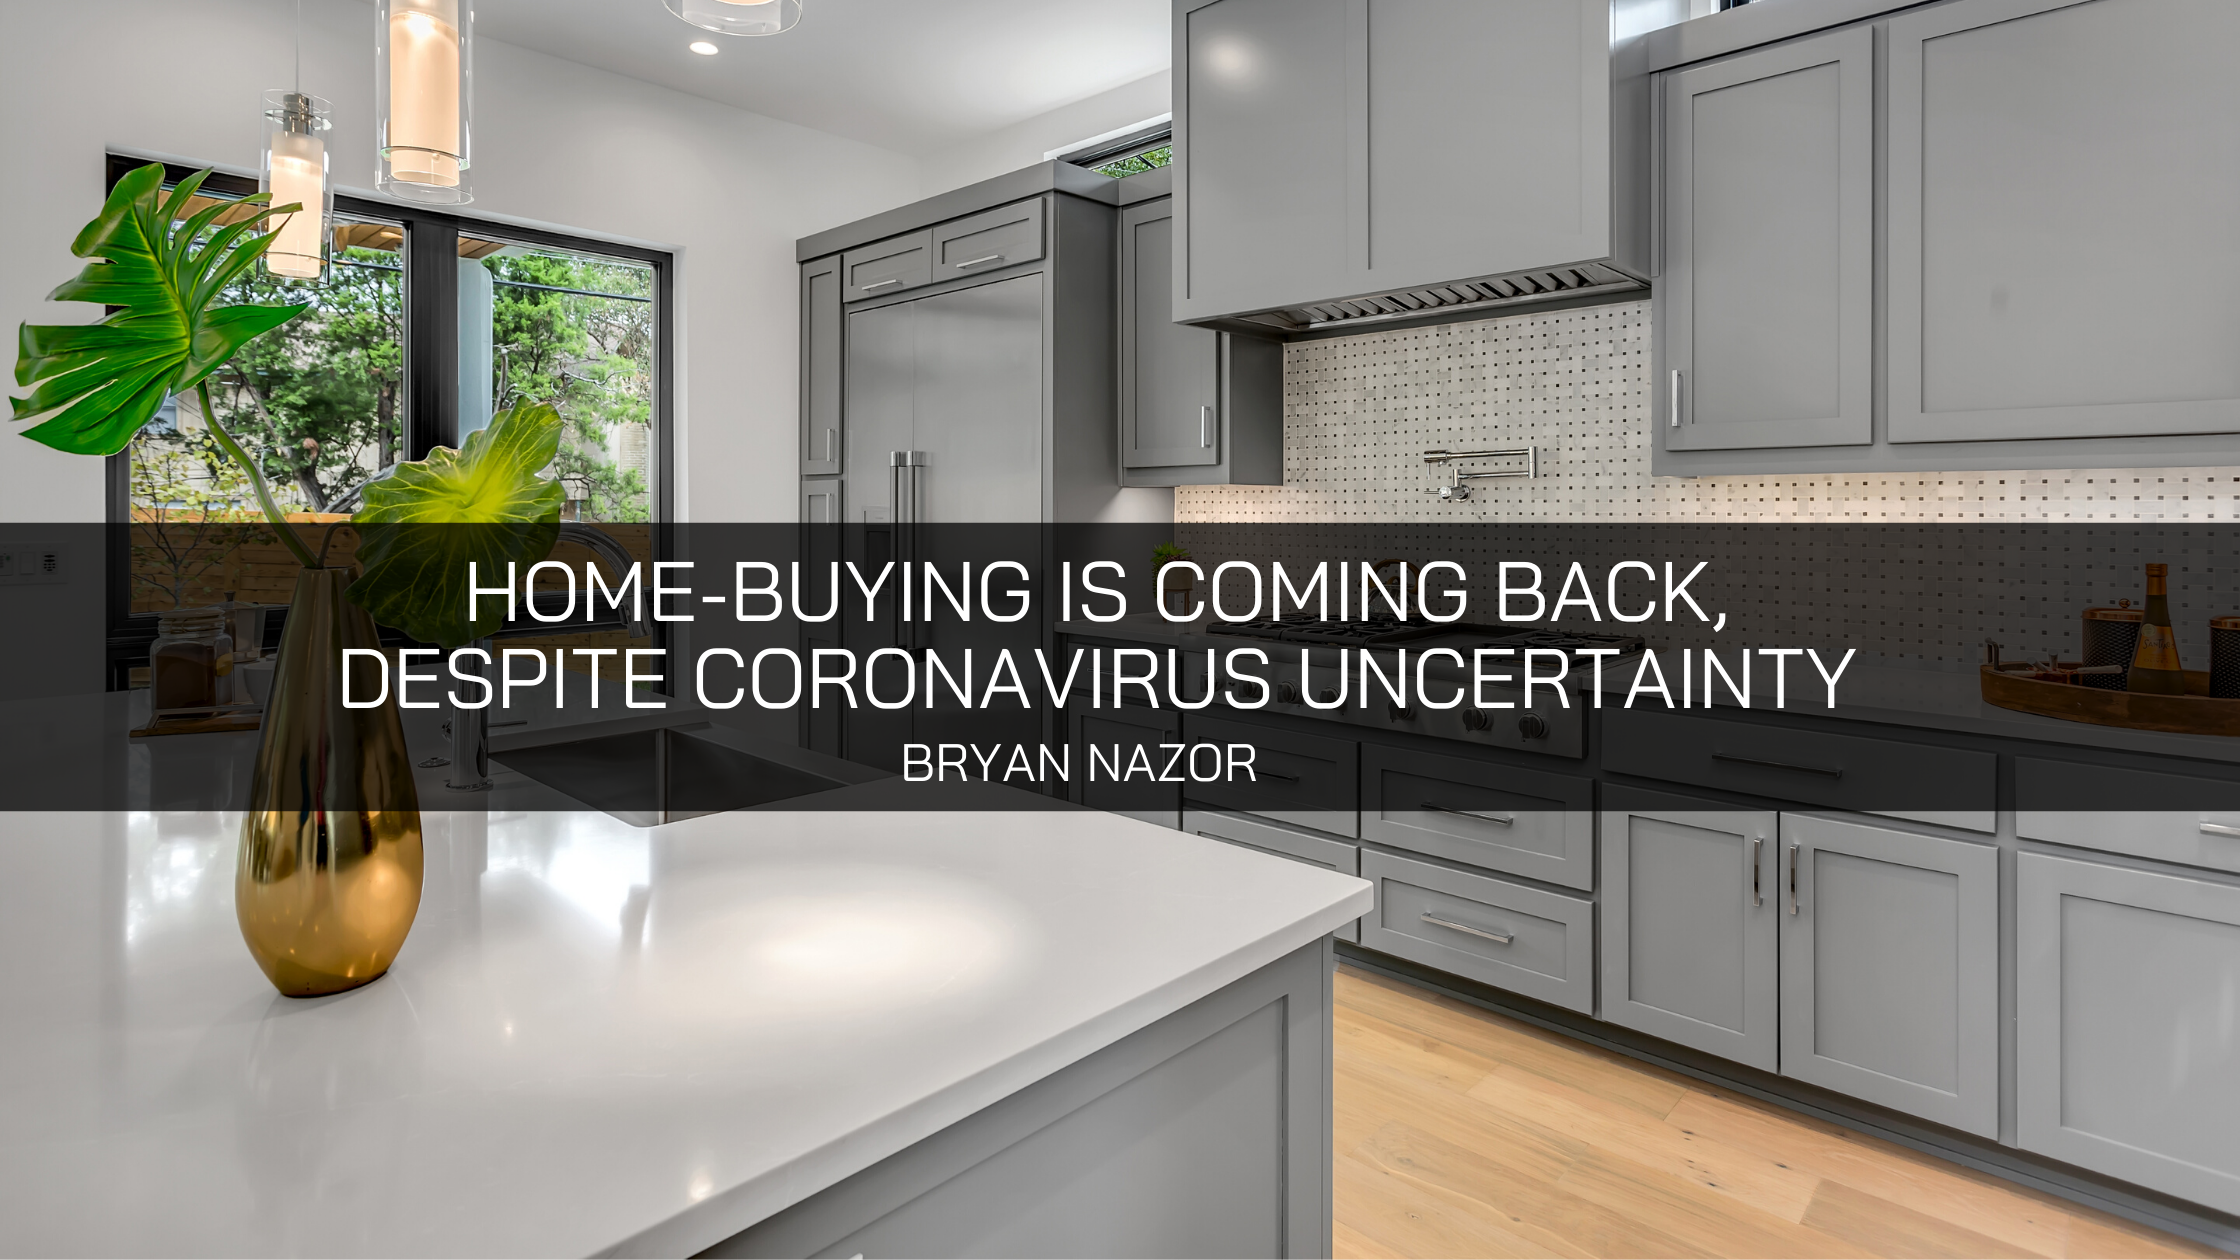 Bryan Nazor Explains the Homebuying Comeback, Despite Coronavirus Uncertainty